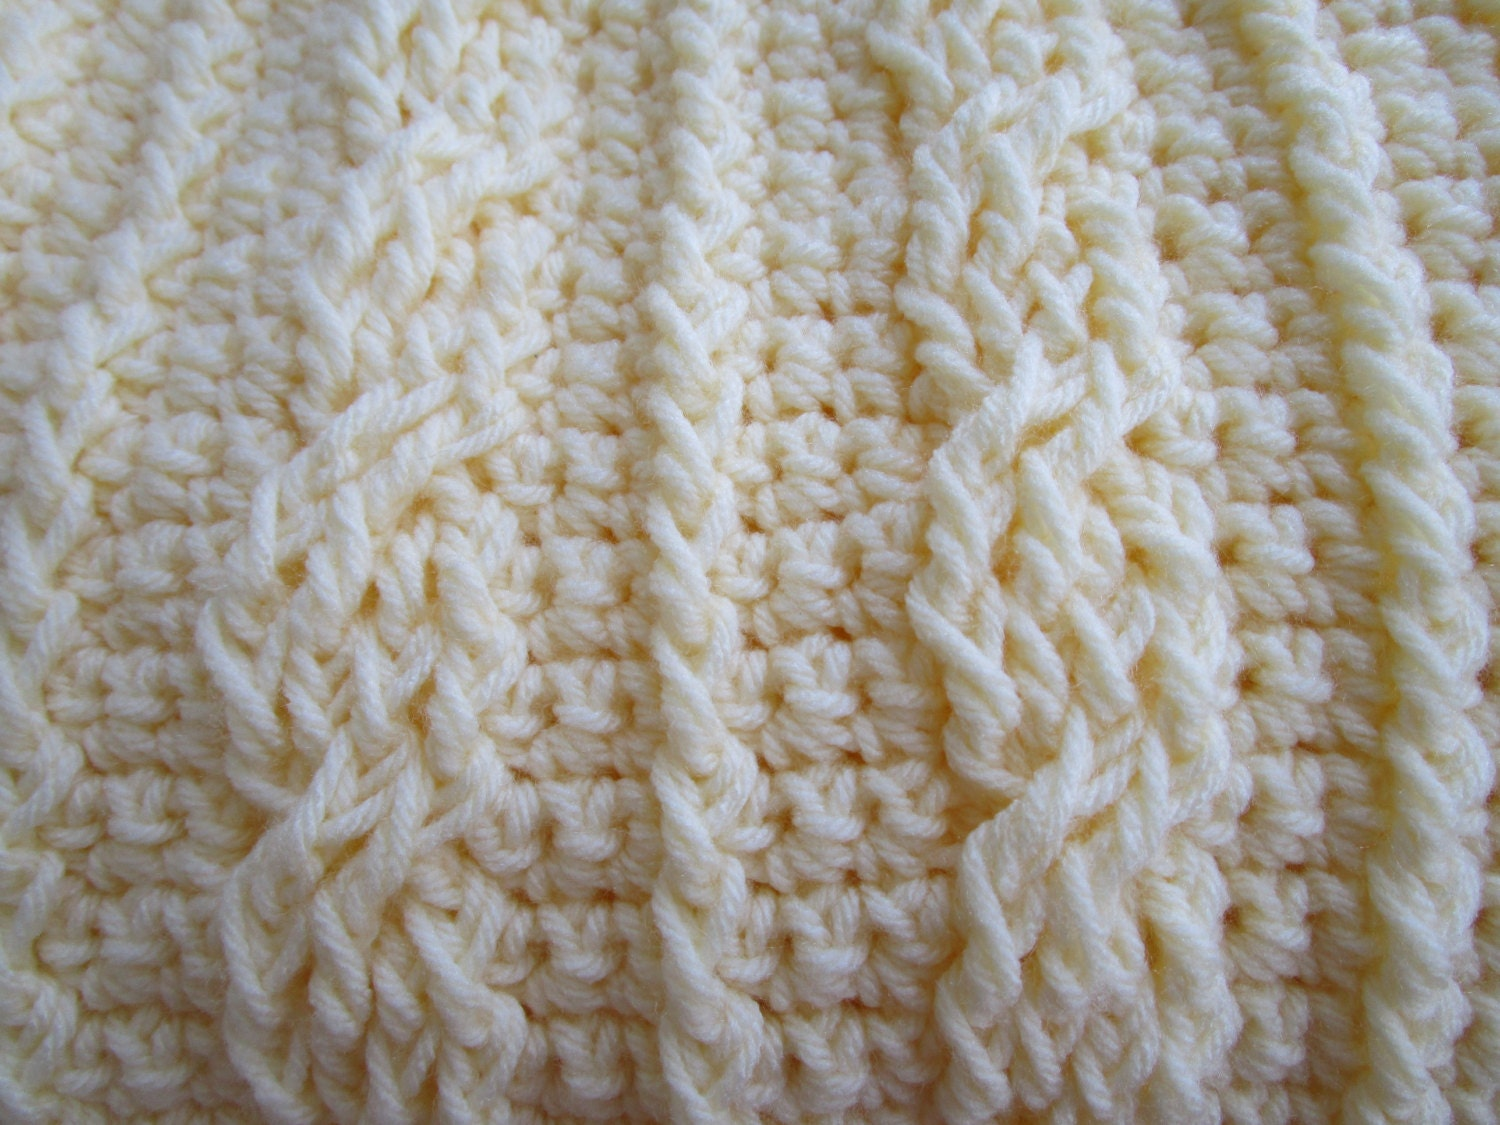 Crochet Cable Stitch Instructions : Crochet Cables Stitch Blanket Pattern afghan pattern crochet